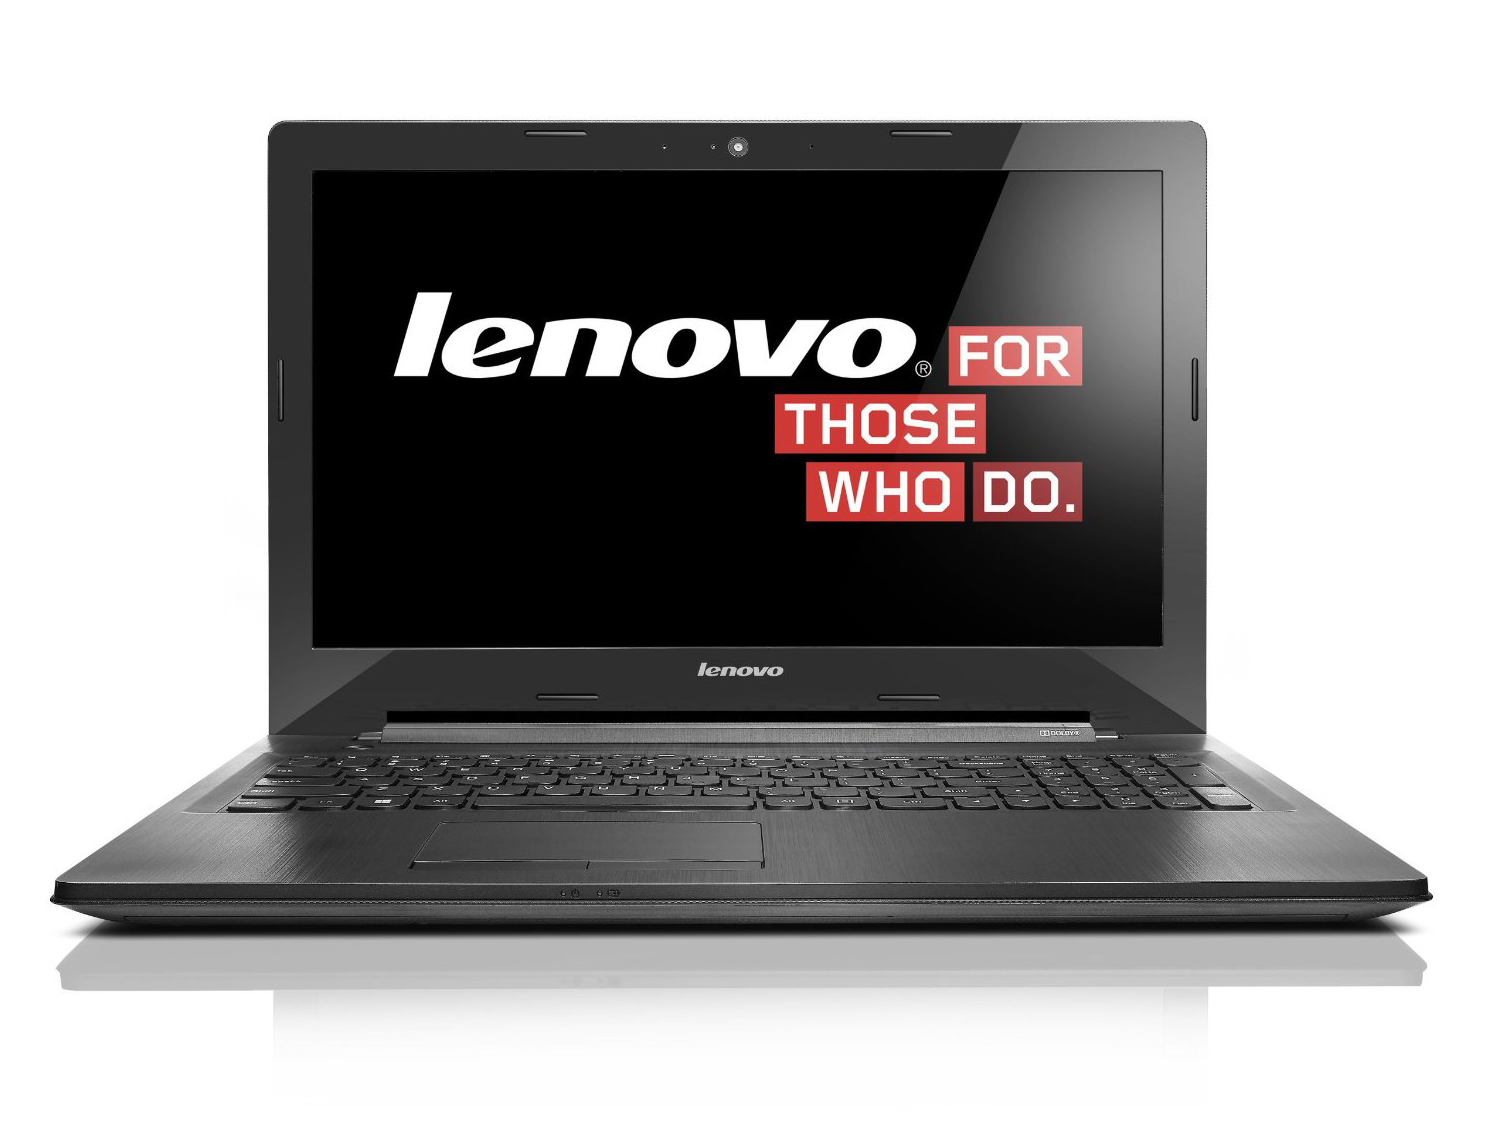 Lenovo G50-30 Notebook Review Update